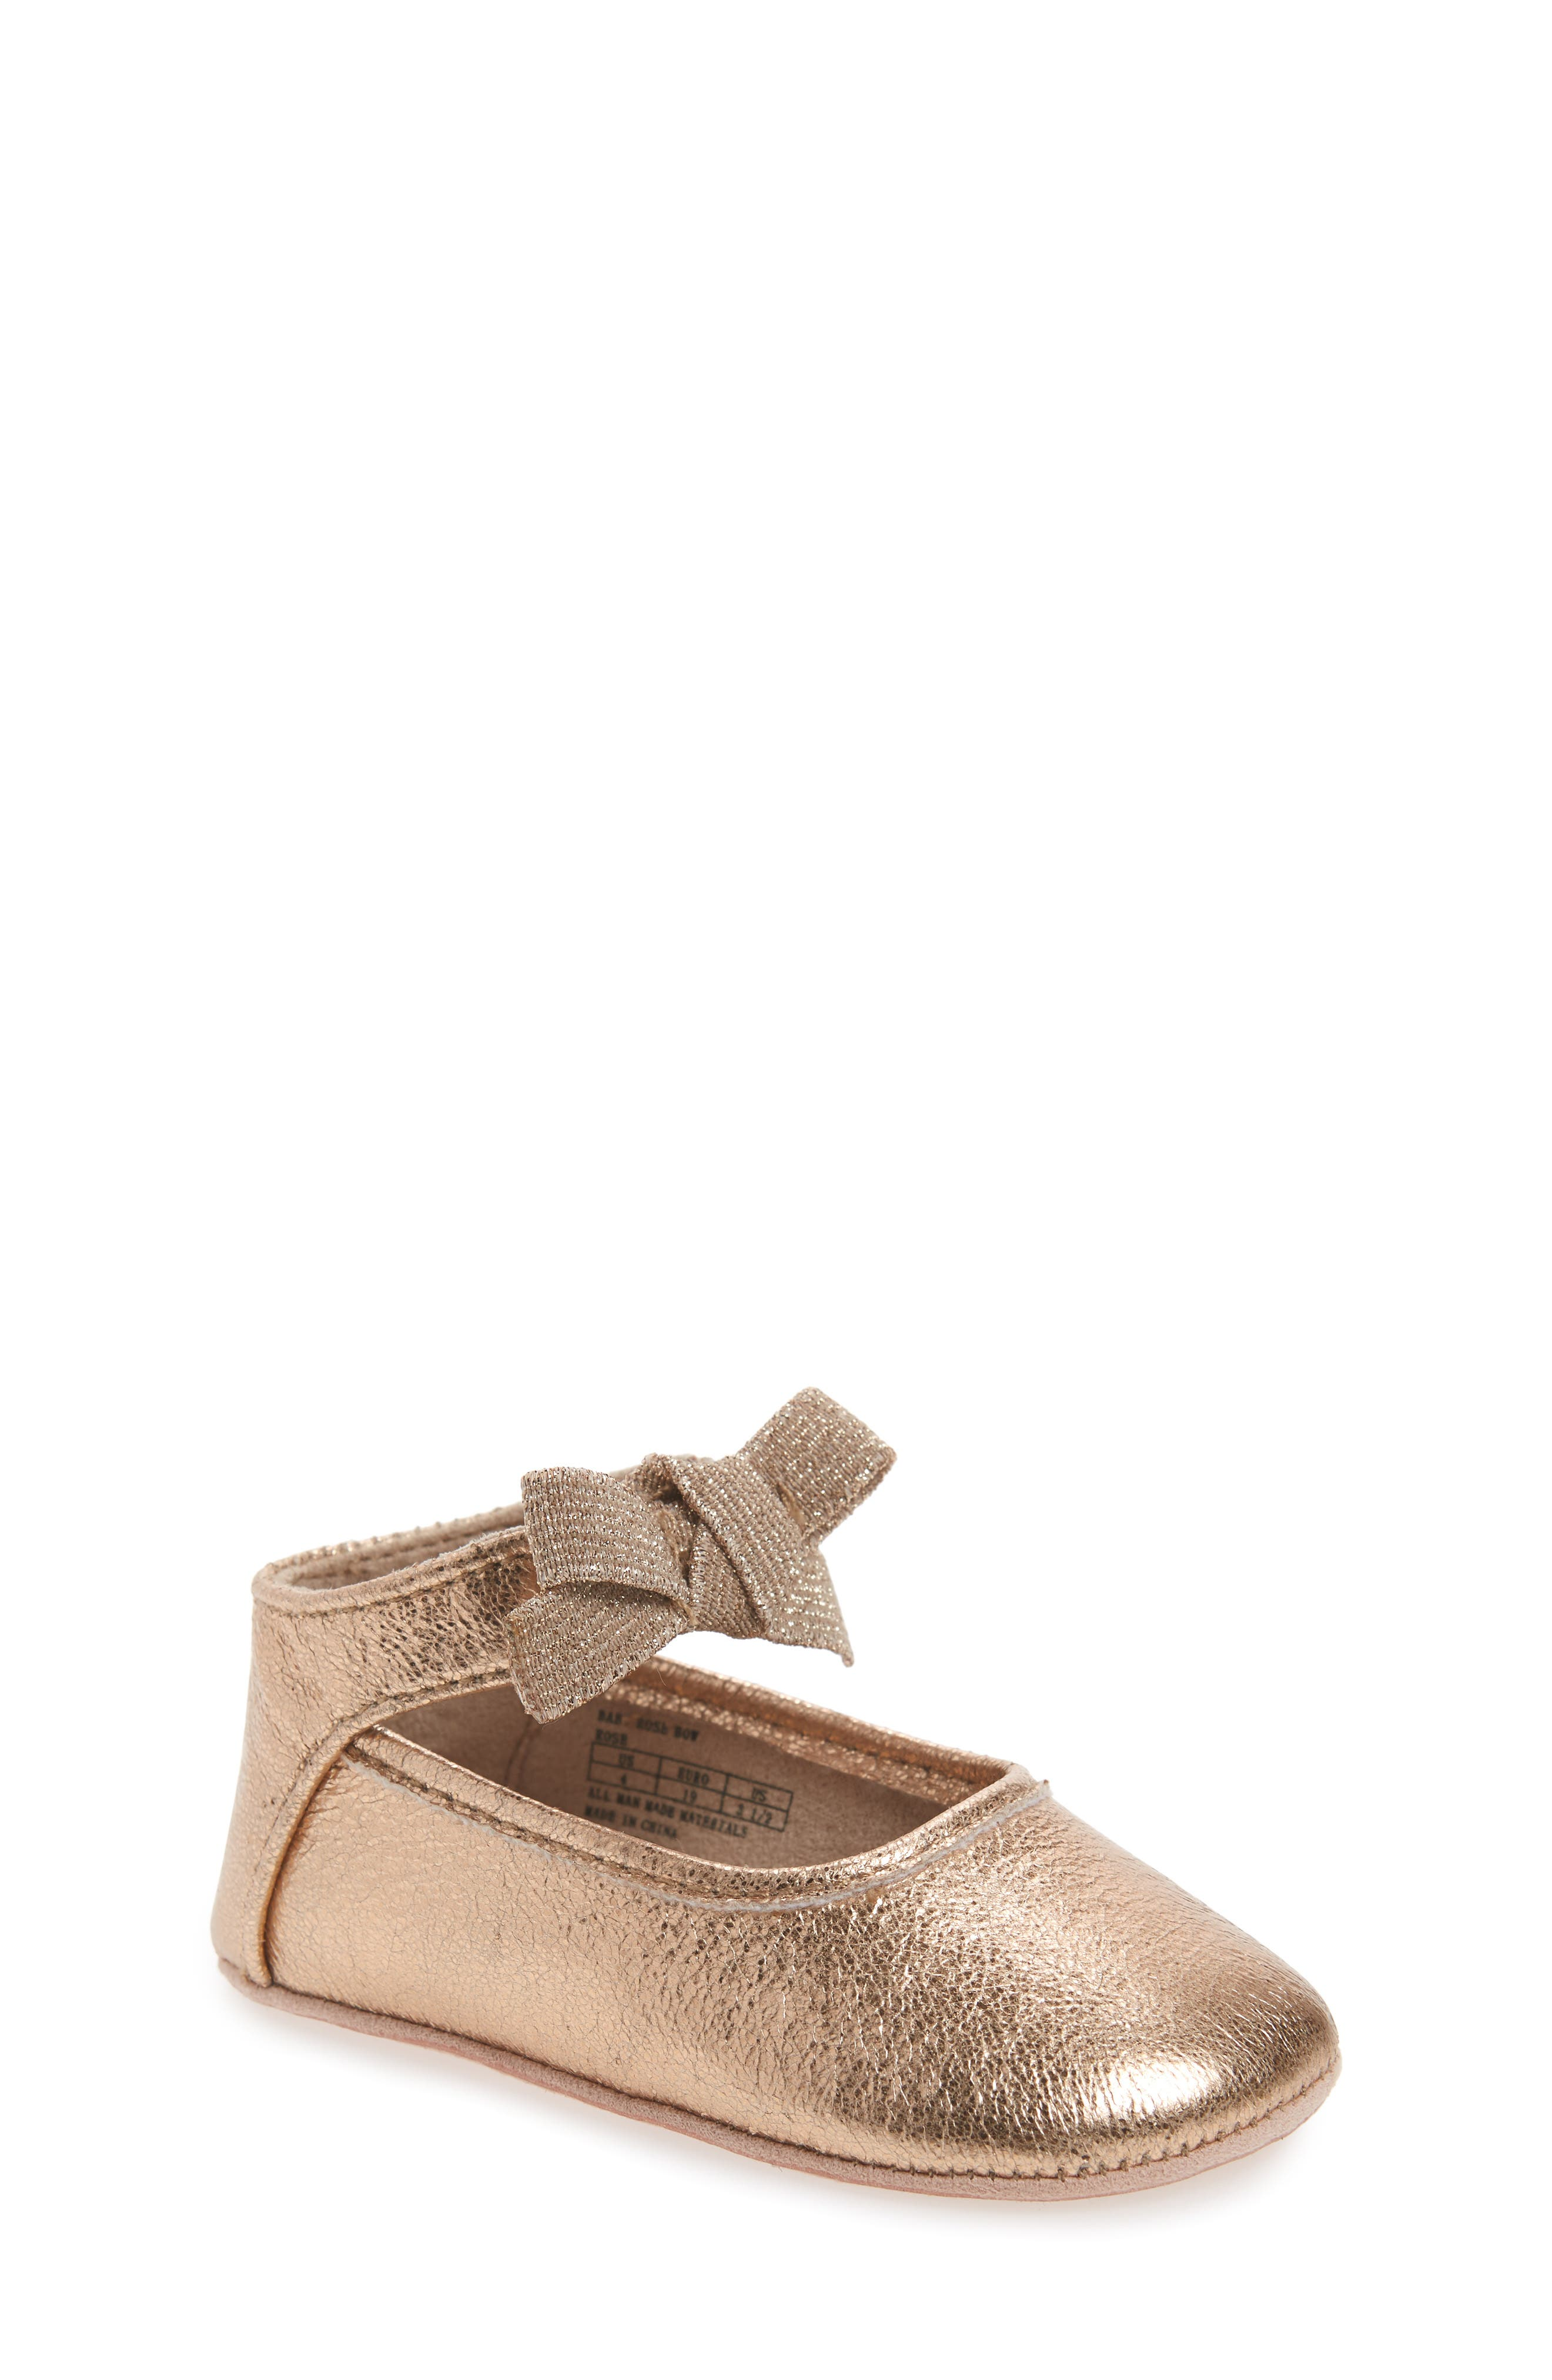 Alternate Image 1 Selected - Kenneth Cole New York Rose Bow Metallic Ballet Flat (Baby)